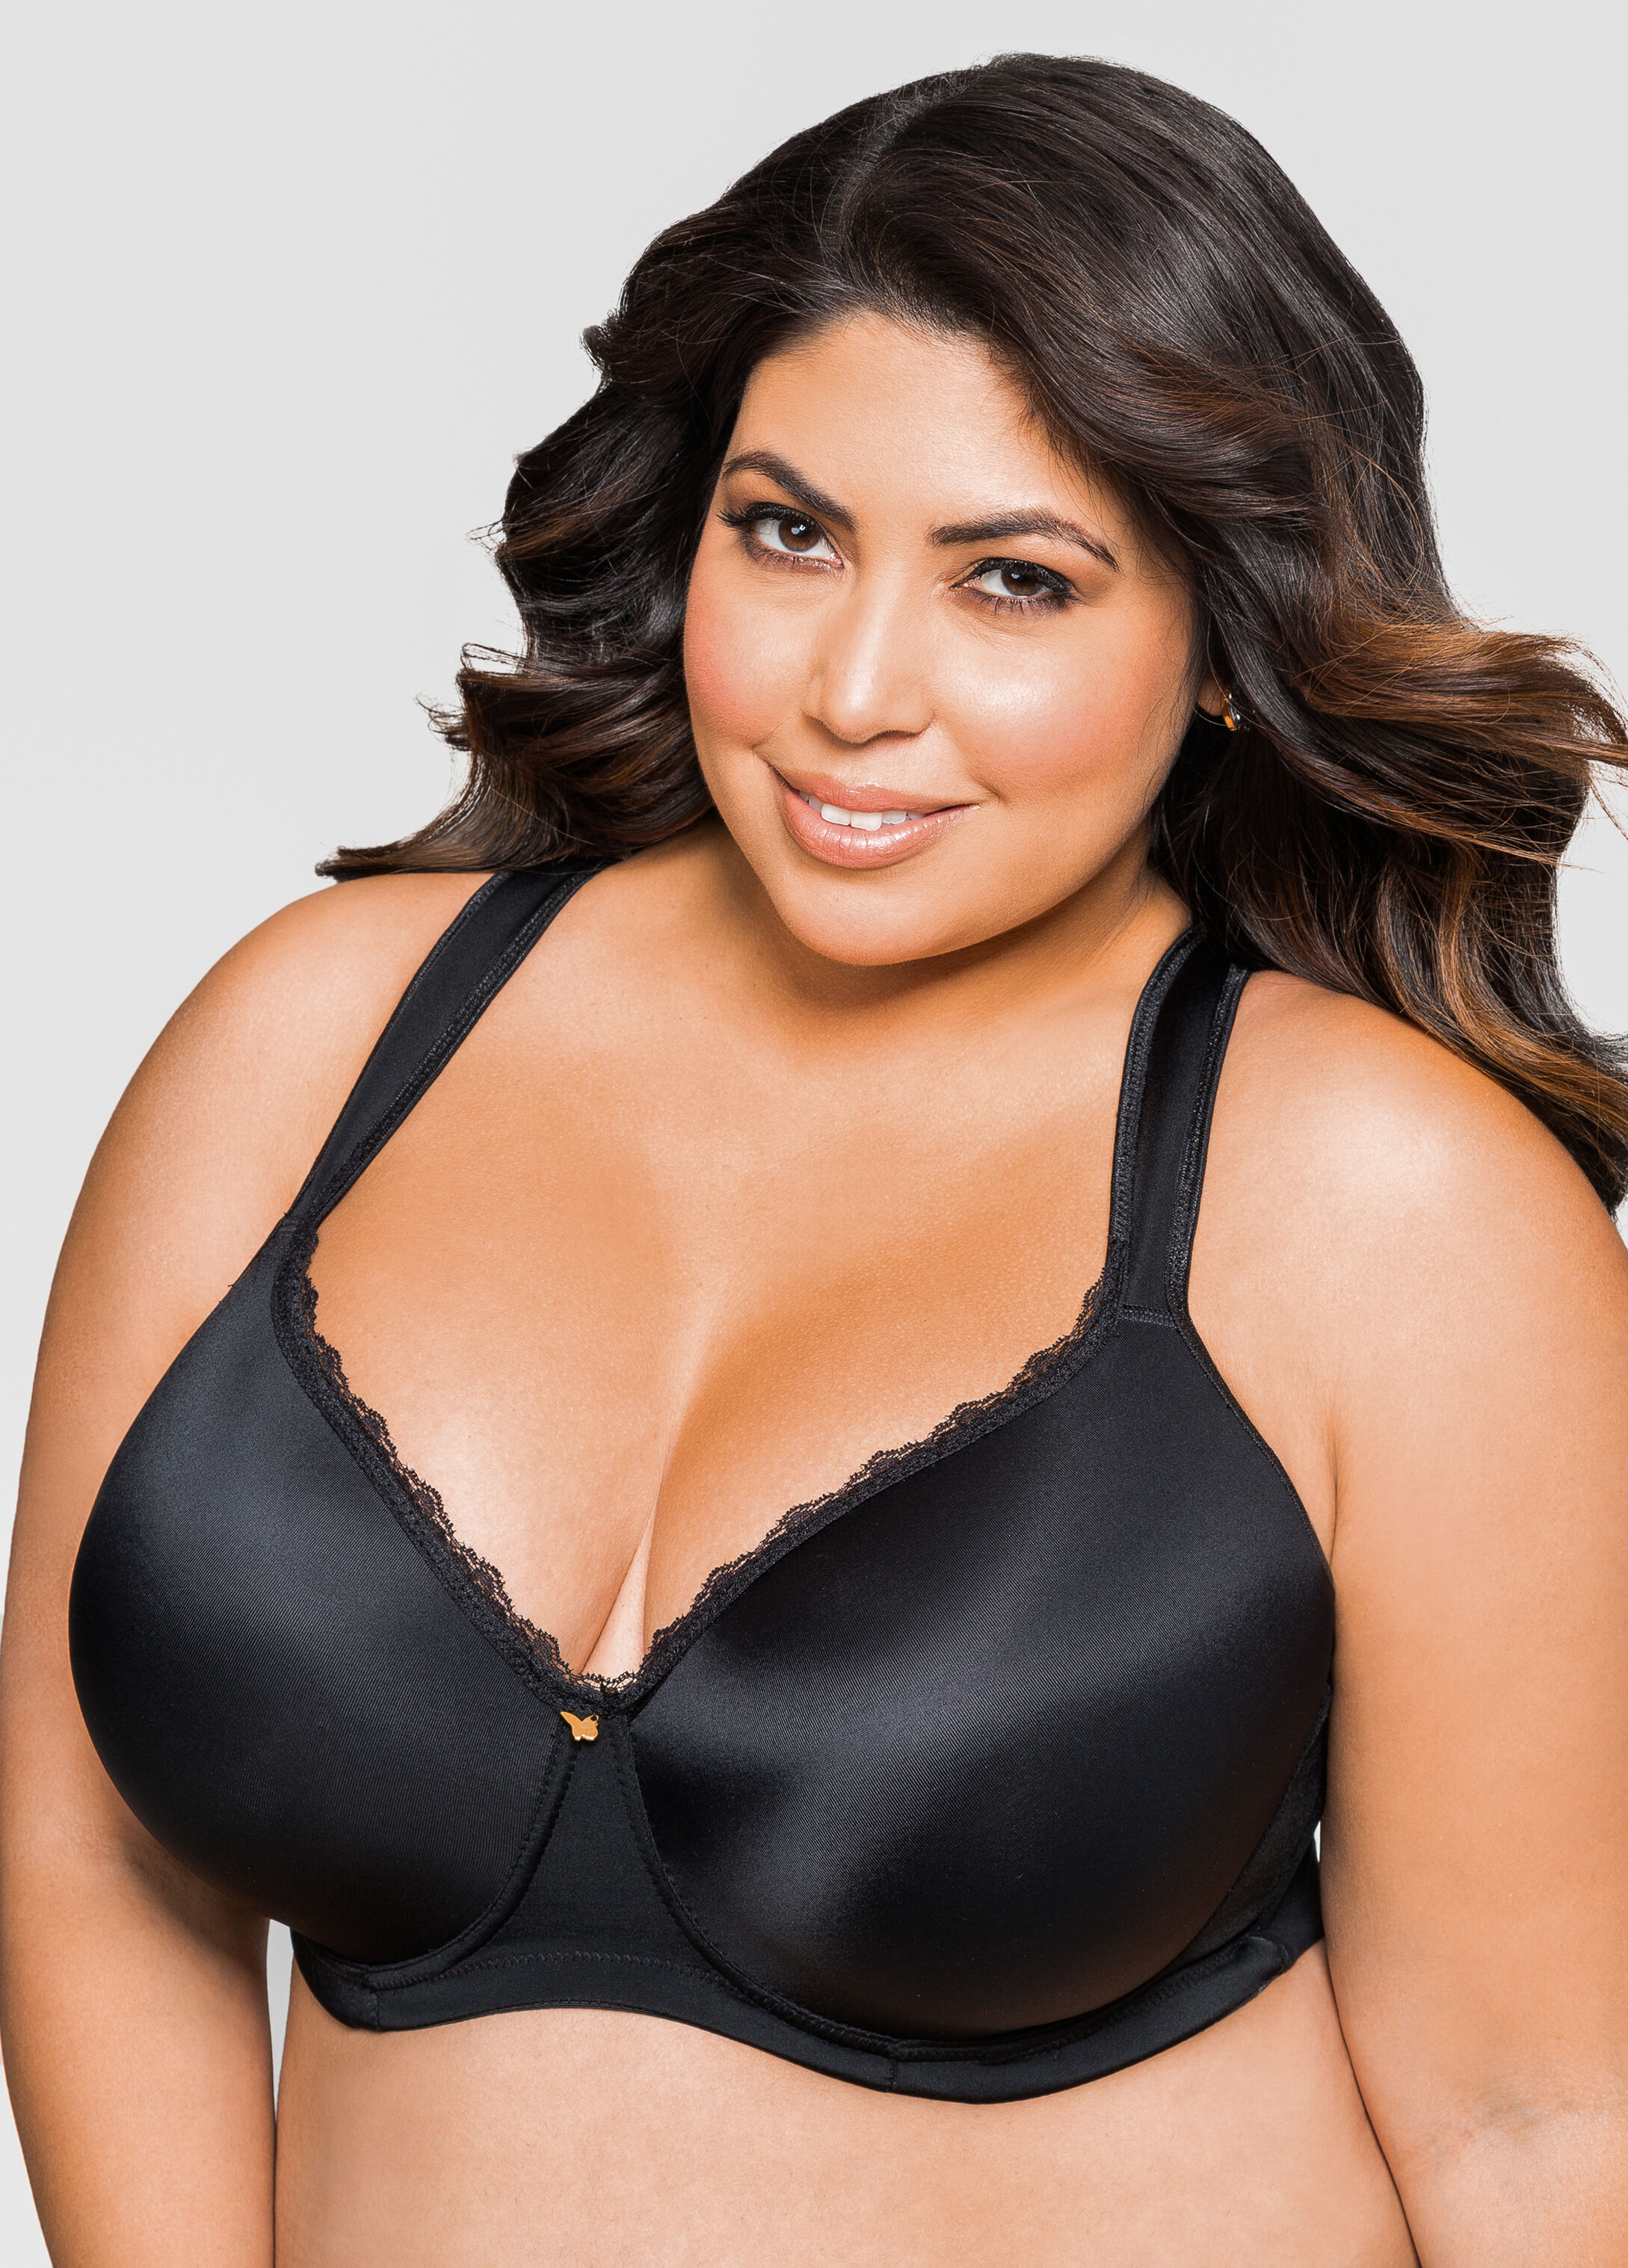 Where To Buy Plus Size Bras diKJAw3i